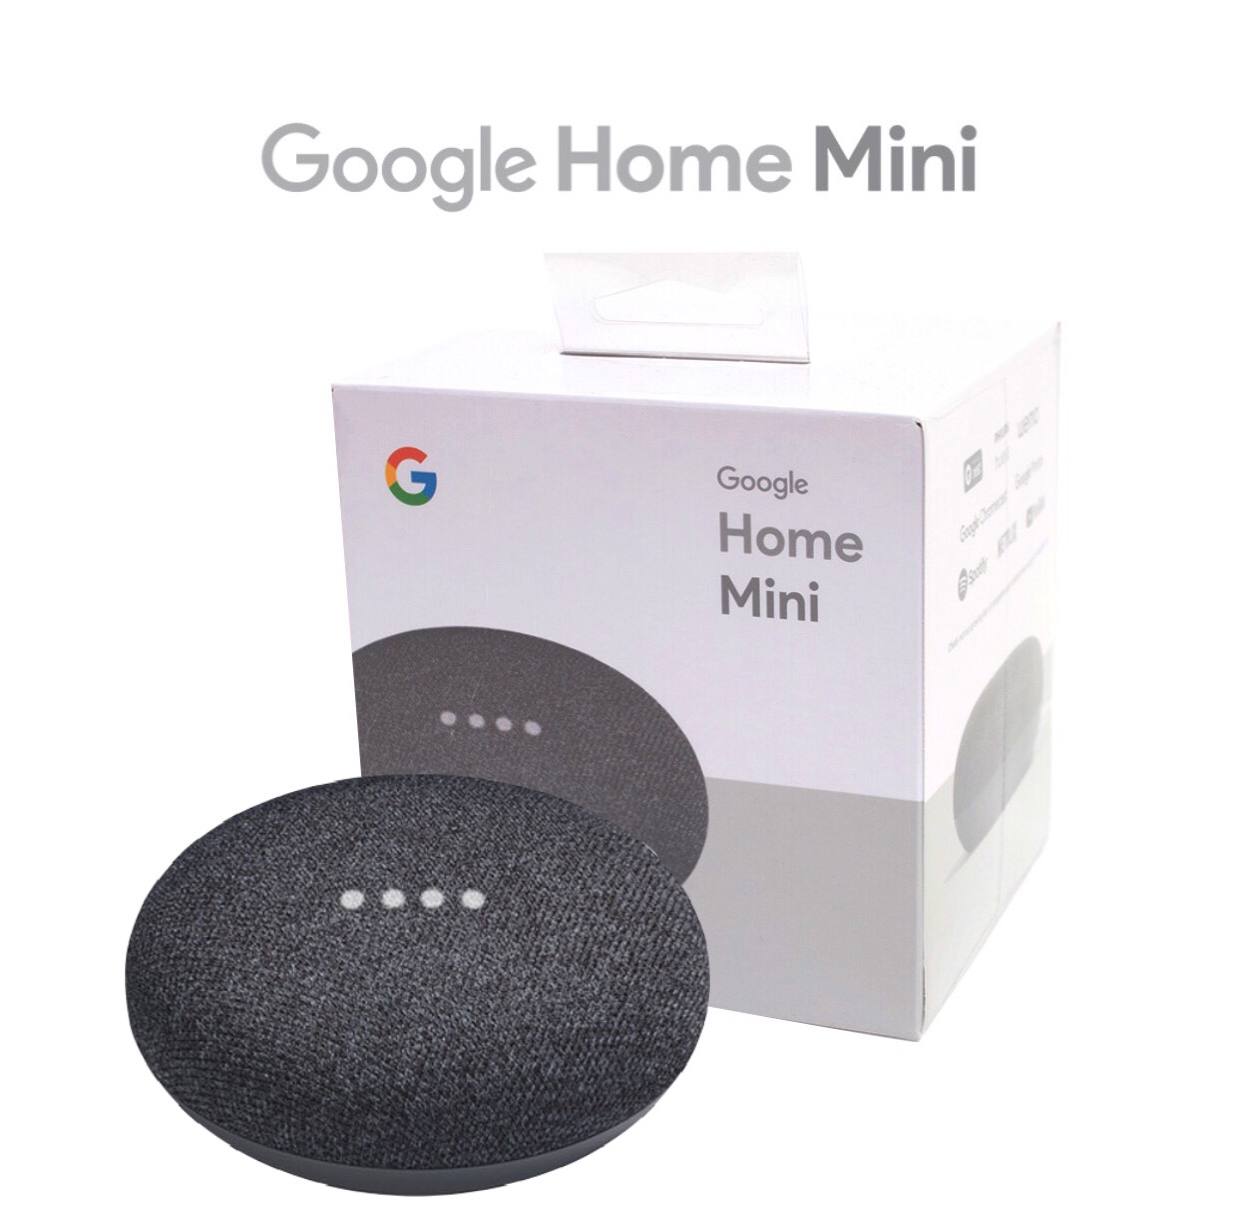 Google Home Mini - Smart Speaker